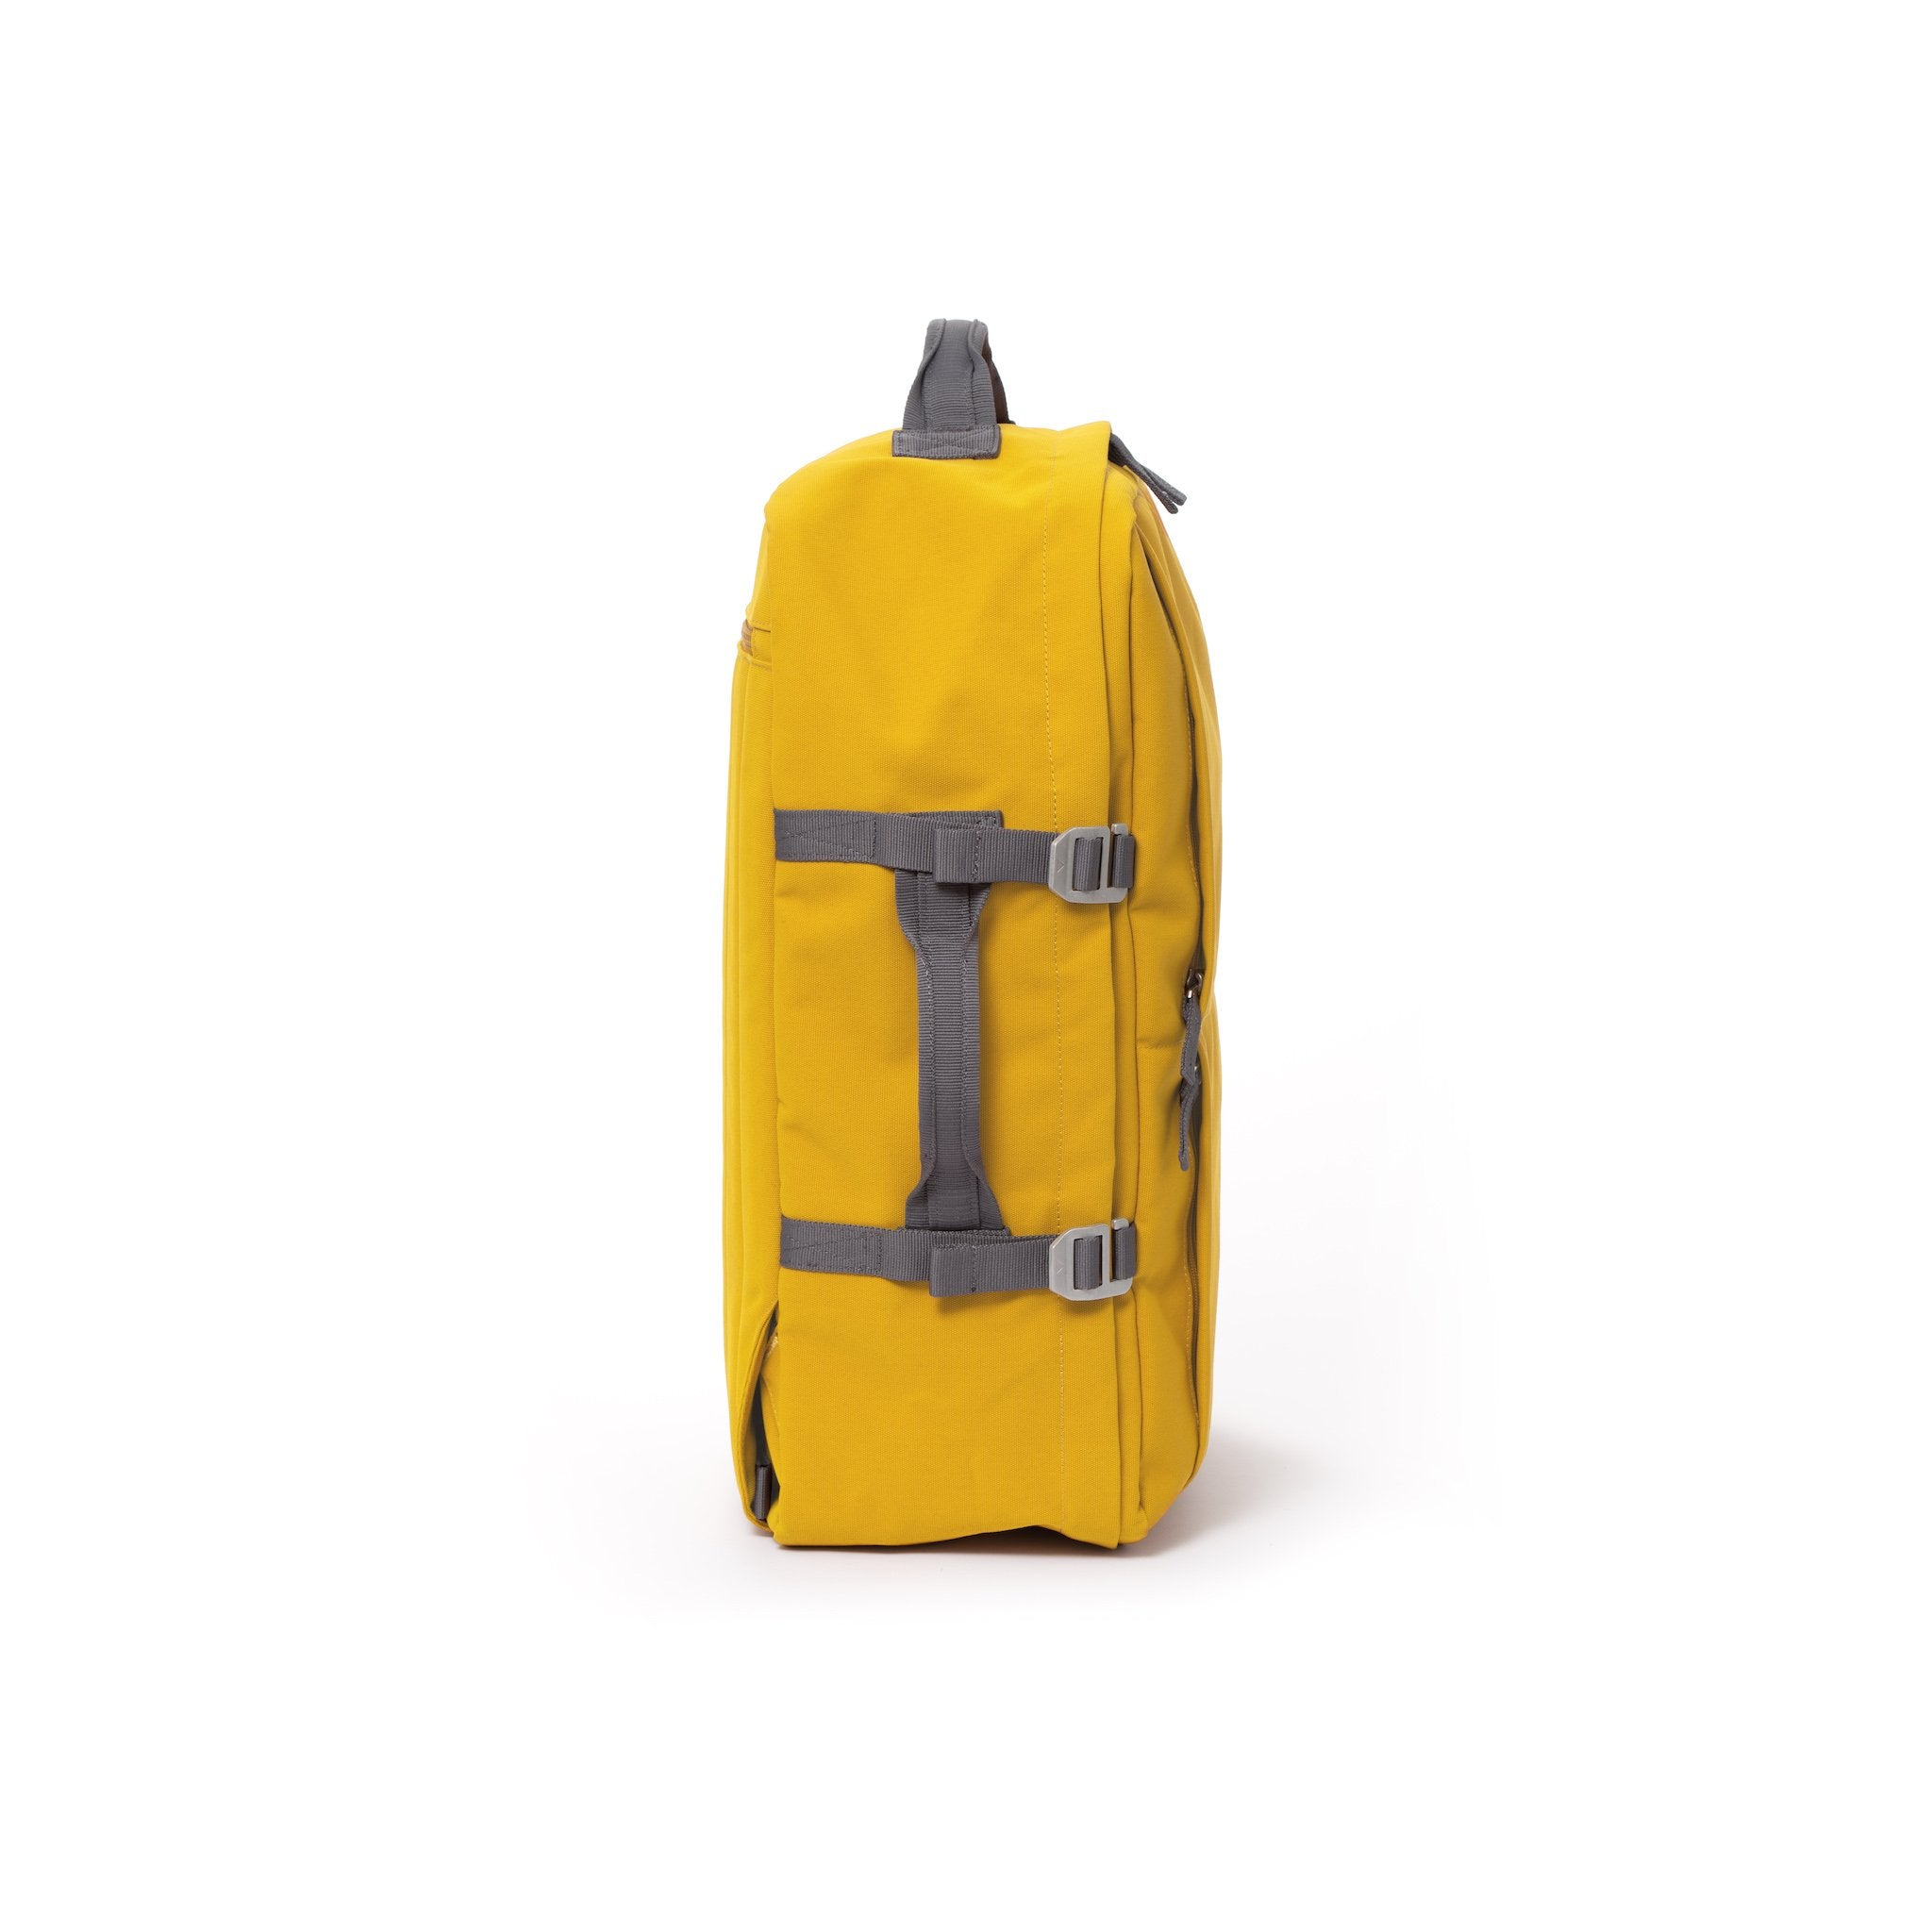 Yellow recycled canvas travel backpack with compression side straps.